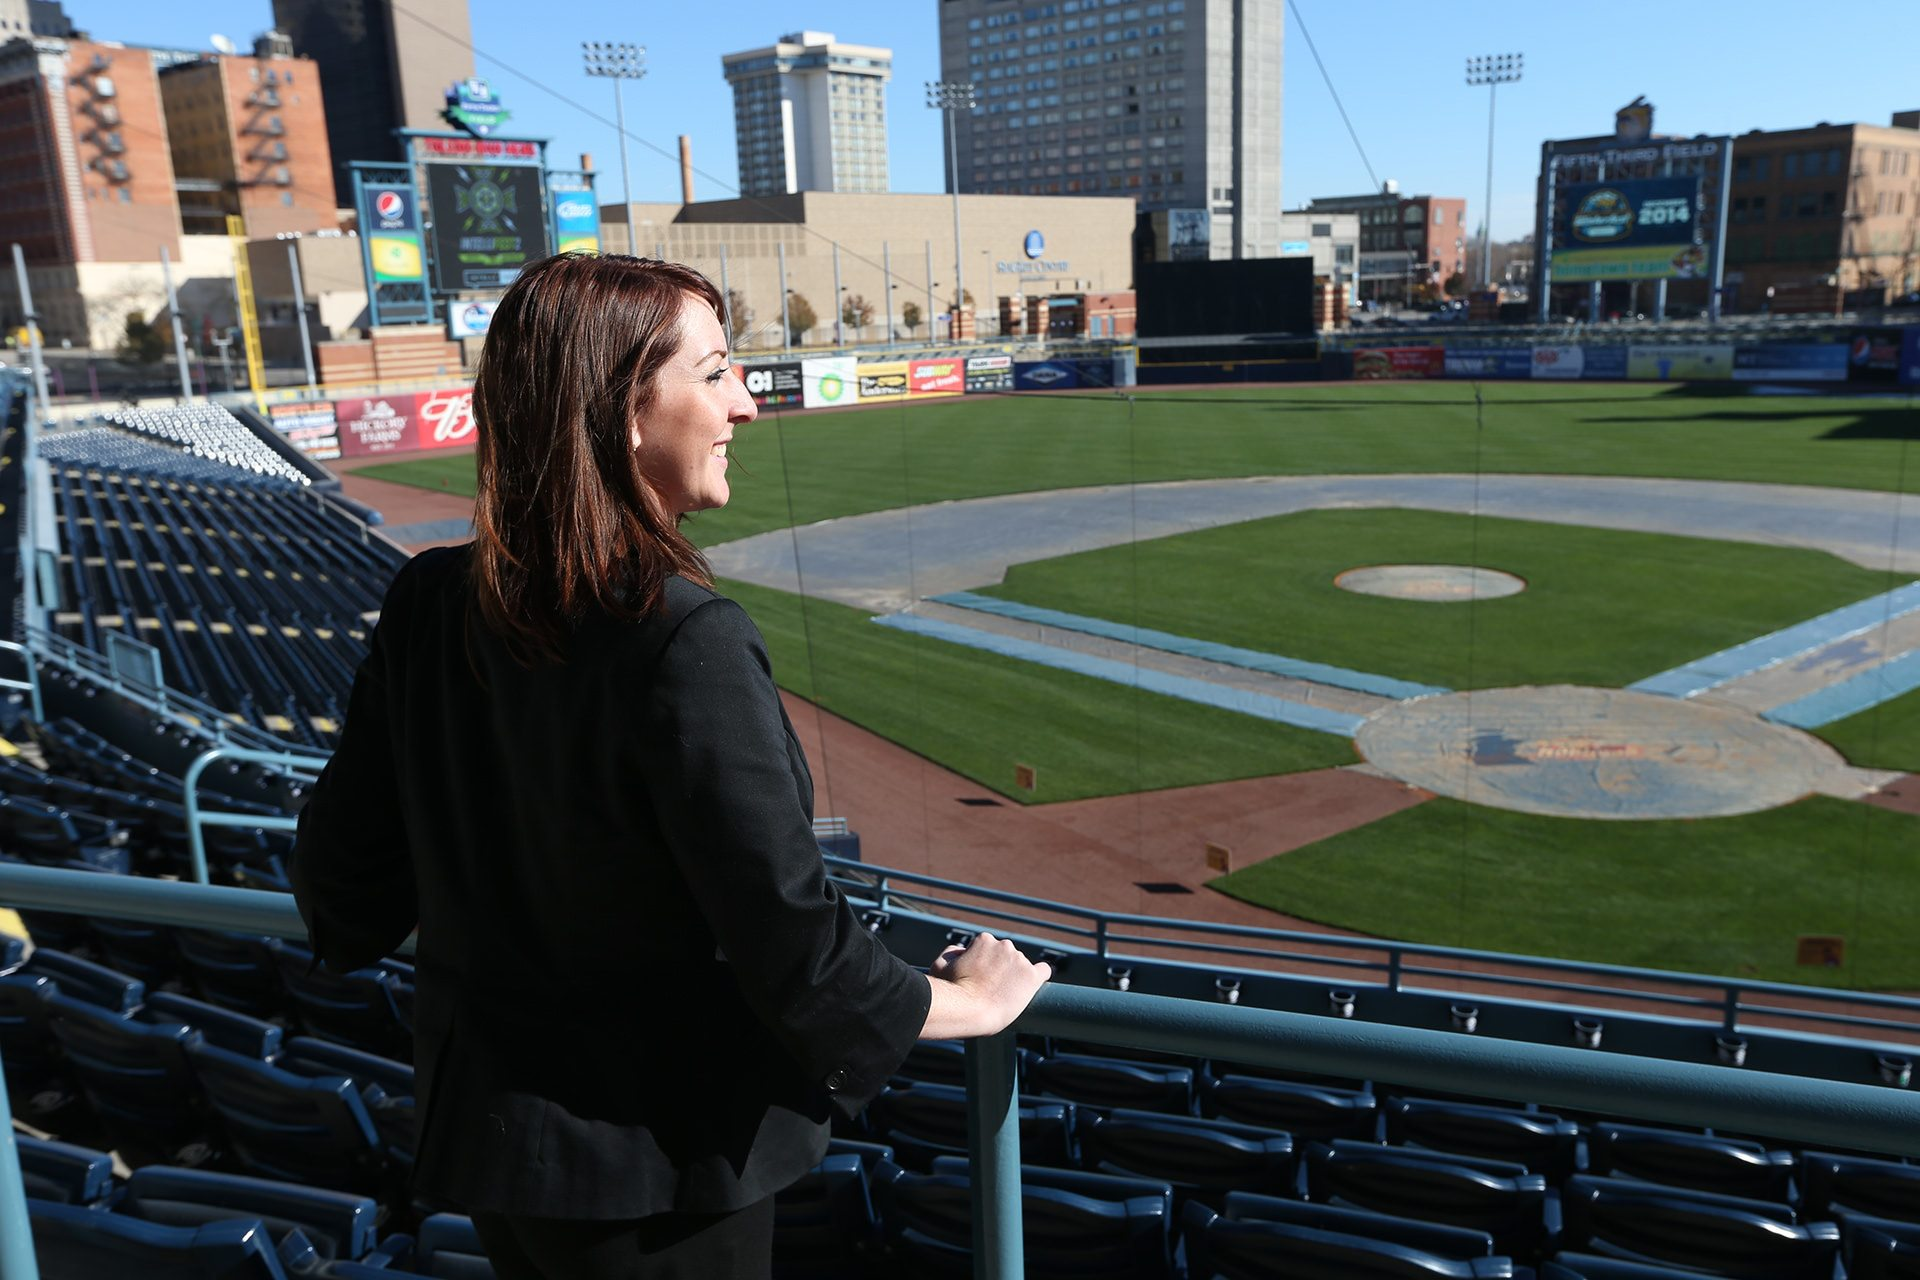 a sport manager overlooking the field.